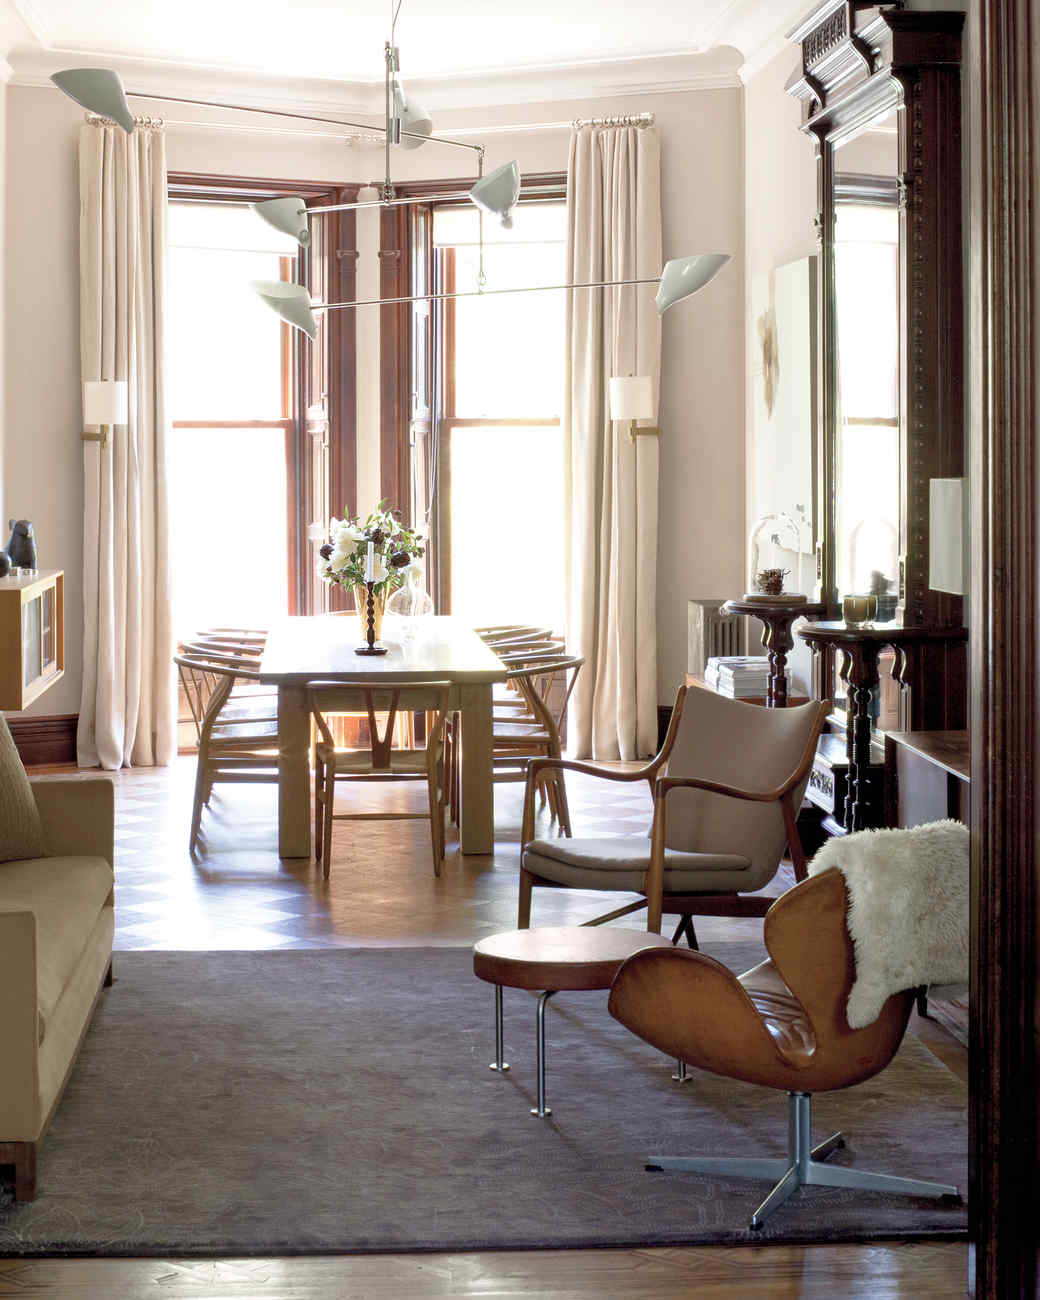 Home Tour A FamilyOriented Brownstone in Brooklyn